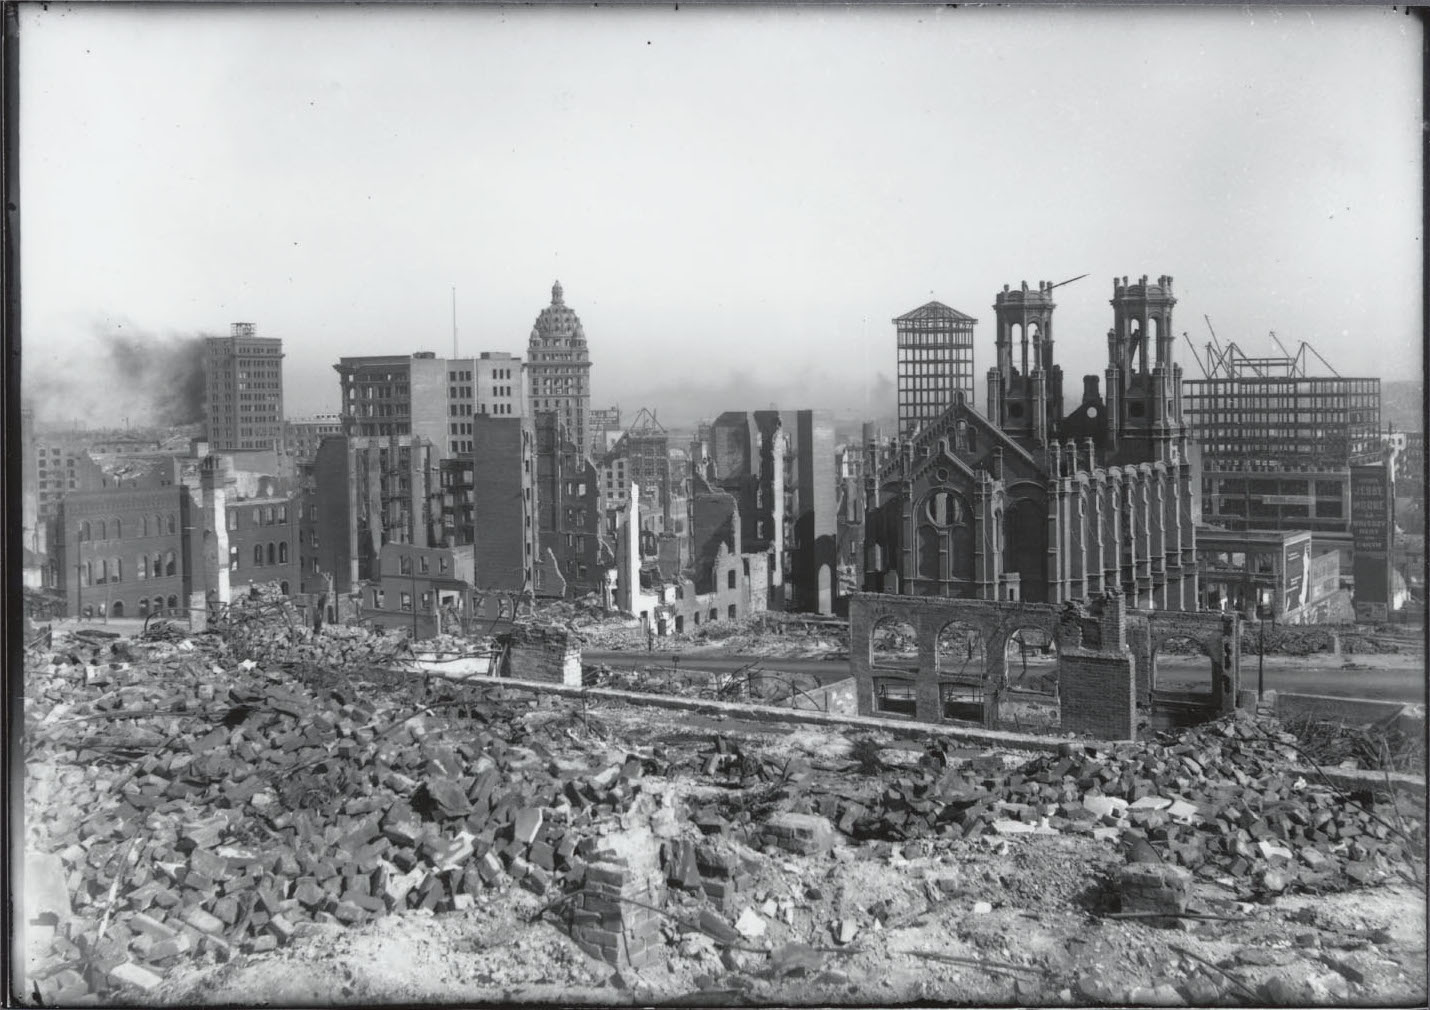 1906 photo of the destruction caused by the 1906 quake and fire